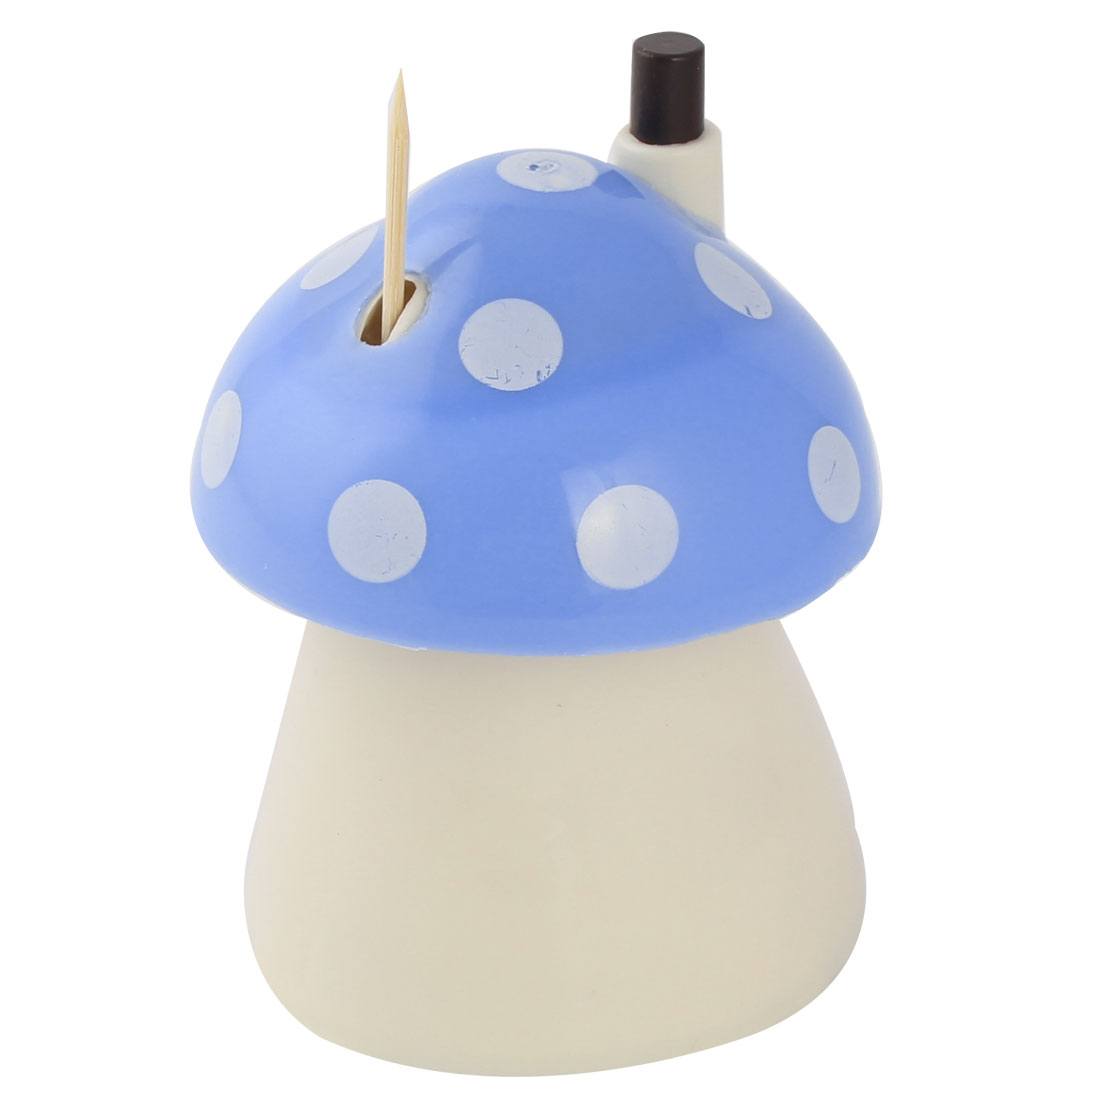 Family Automatic Plastic Mushroom Shaped Toothpick Holder Case Sky Blue White